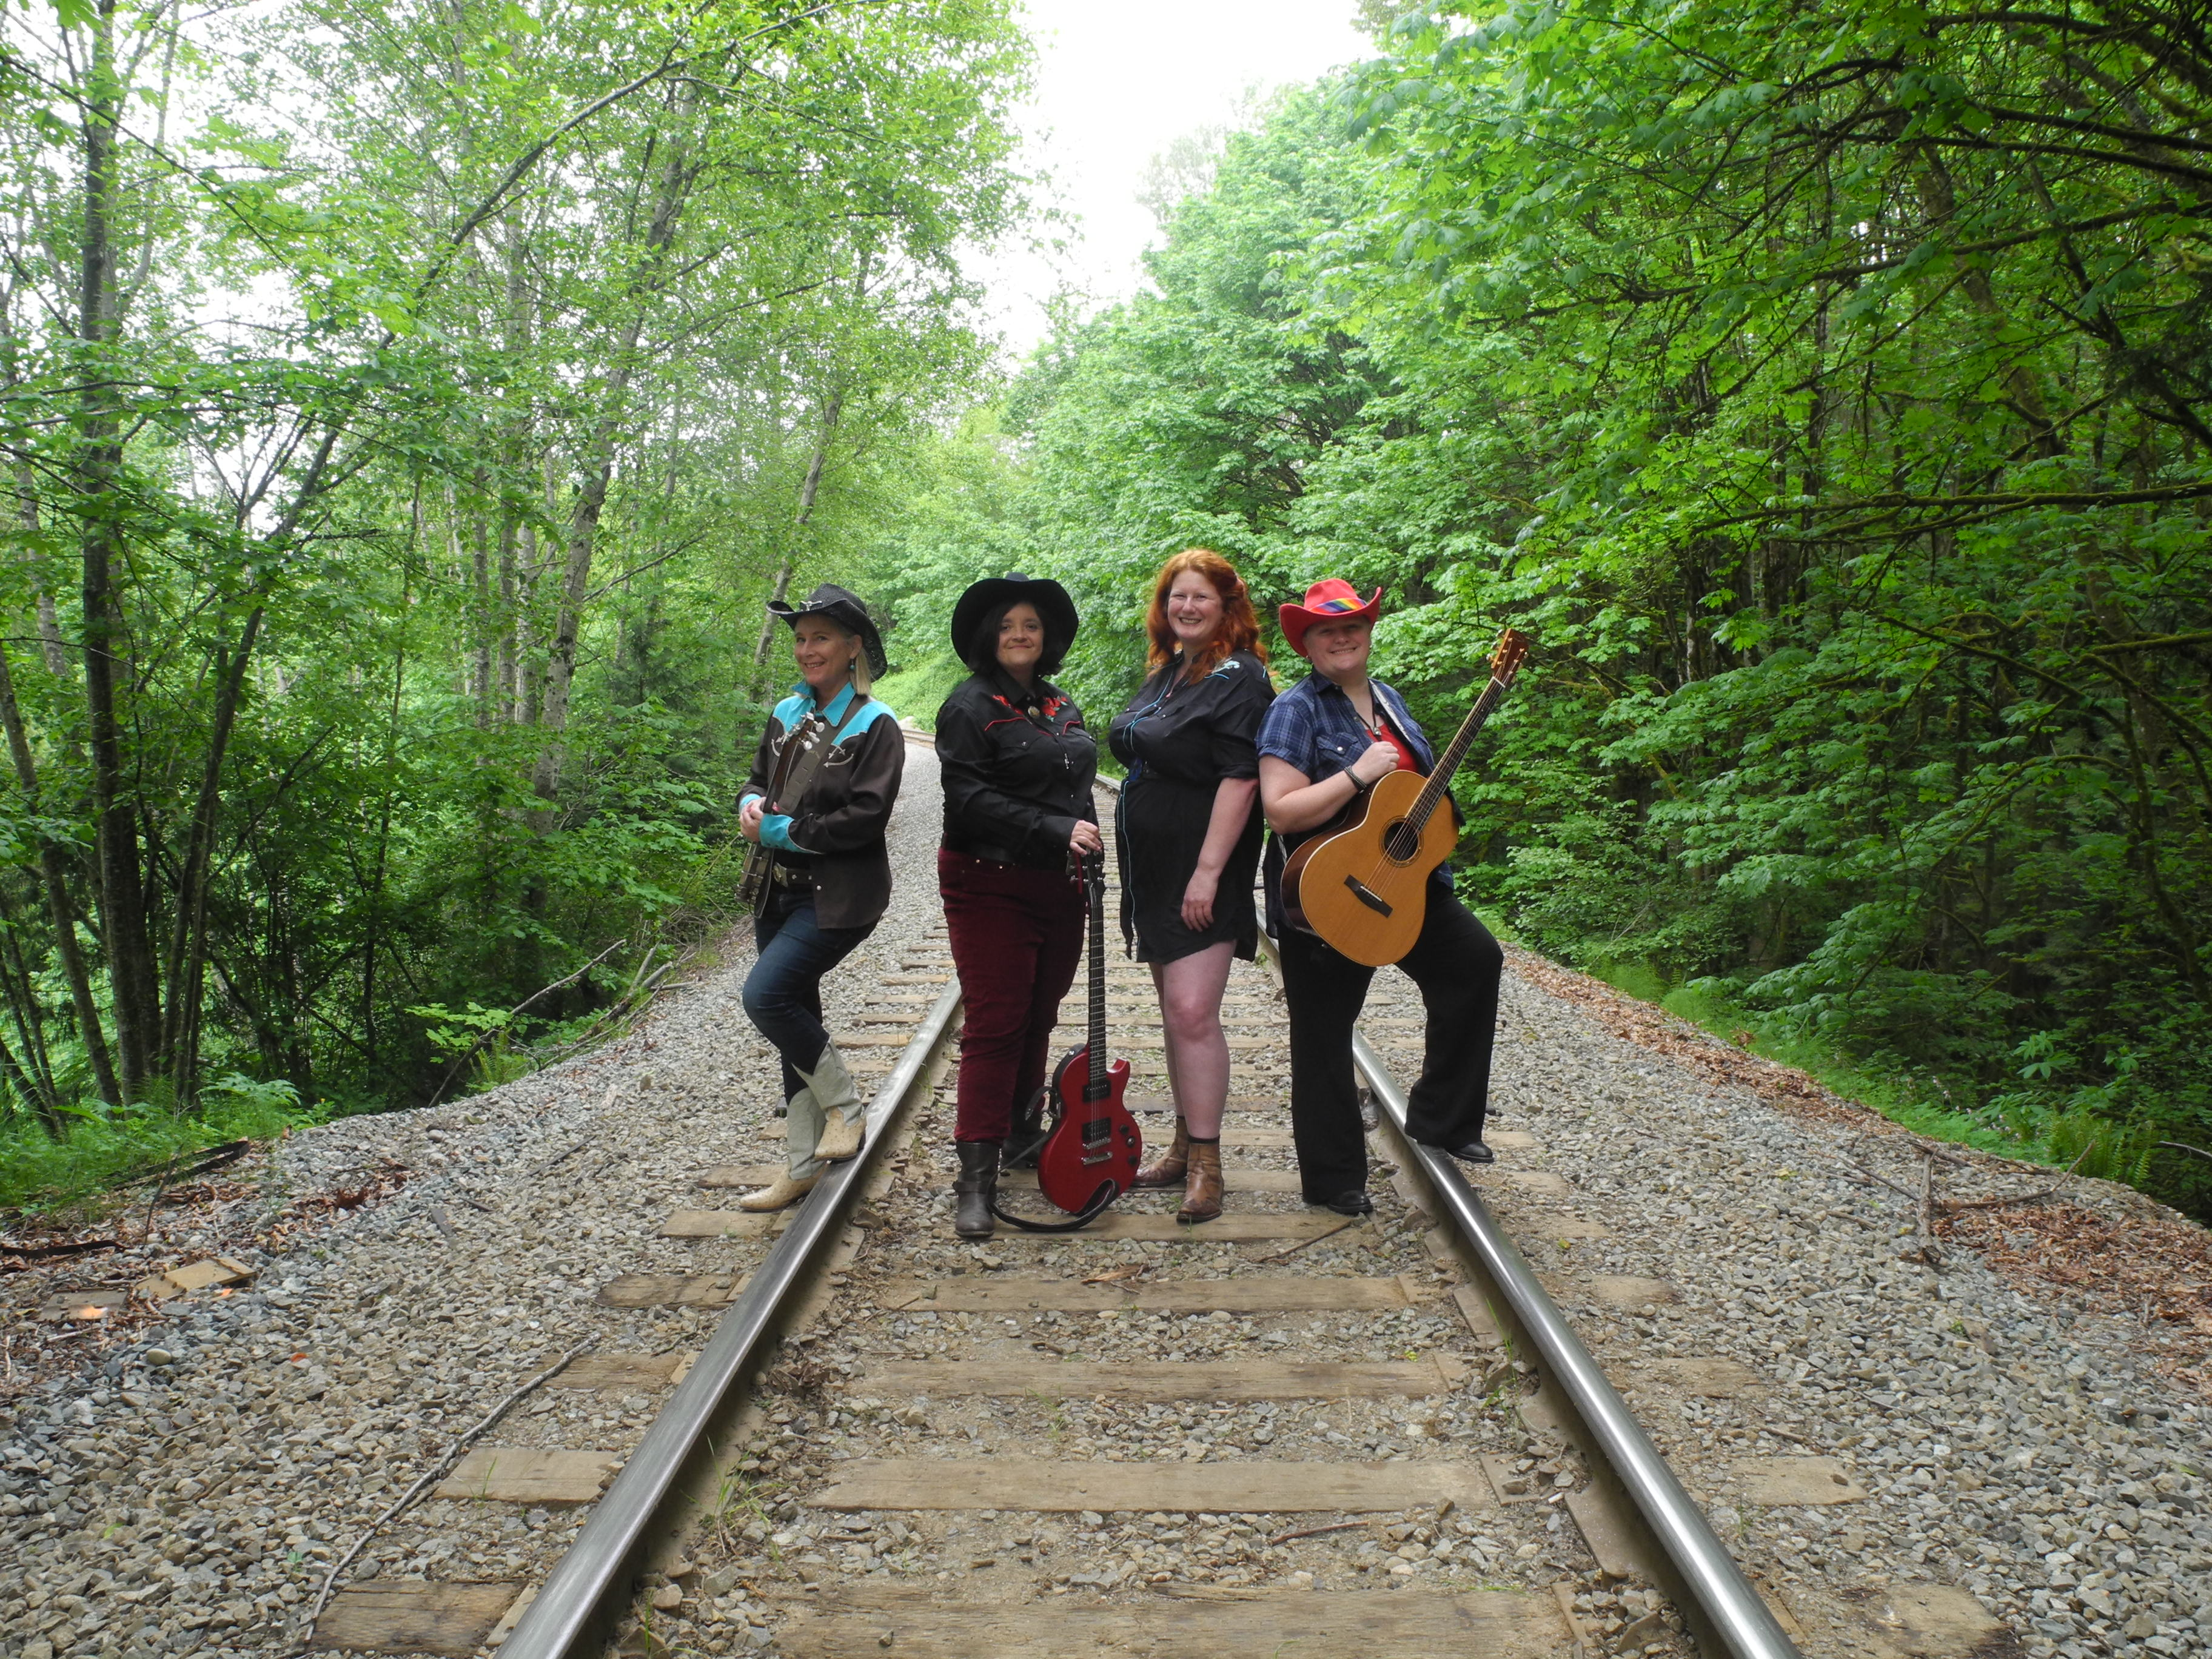 Bushy Park musicians on railway track with bush on either side